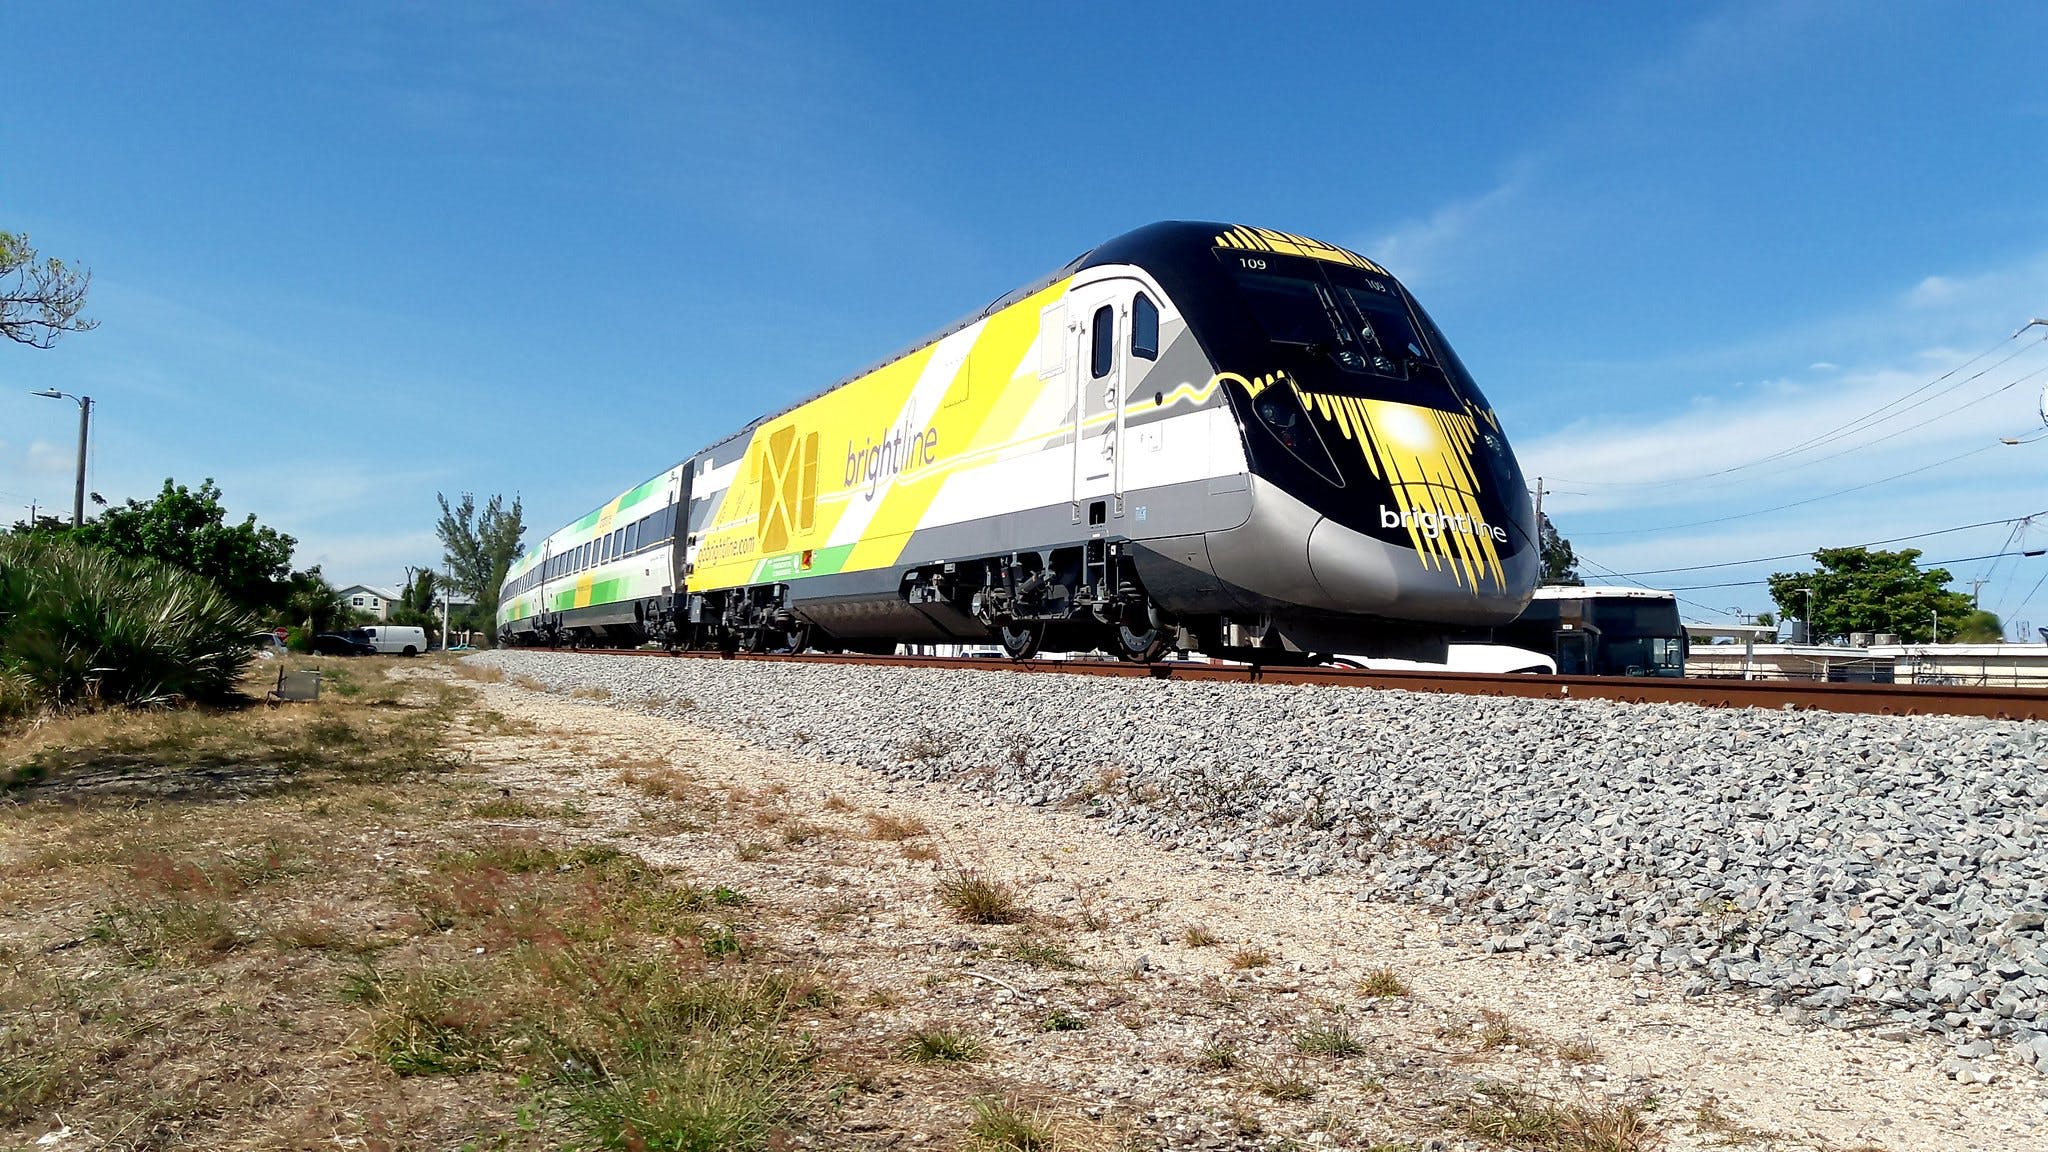 Construction on high-speed rail line linking Los Angeles and